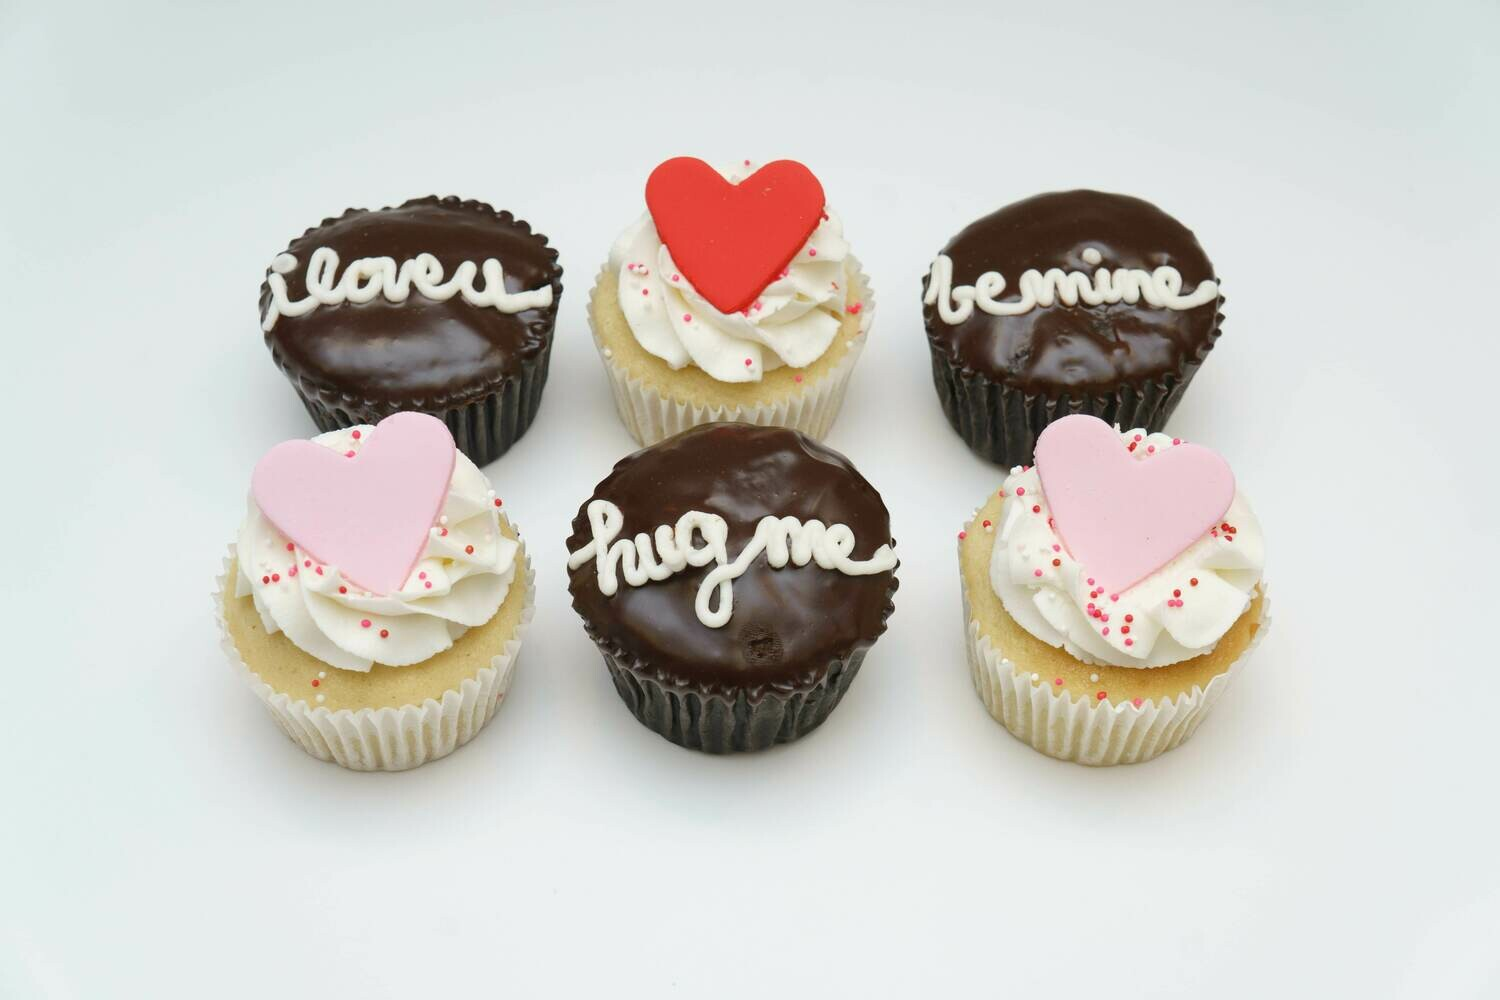 Sweetheart Sayings 6 Pack Cupcakes